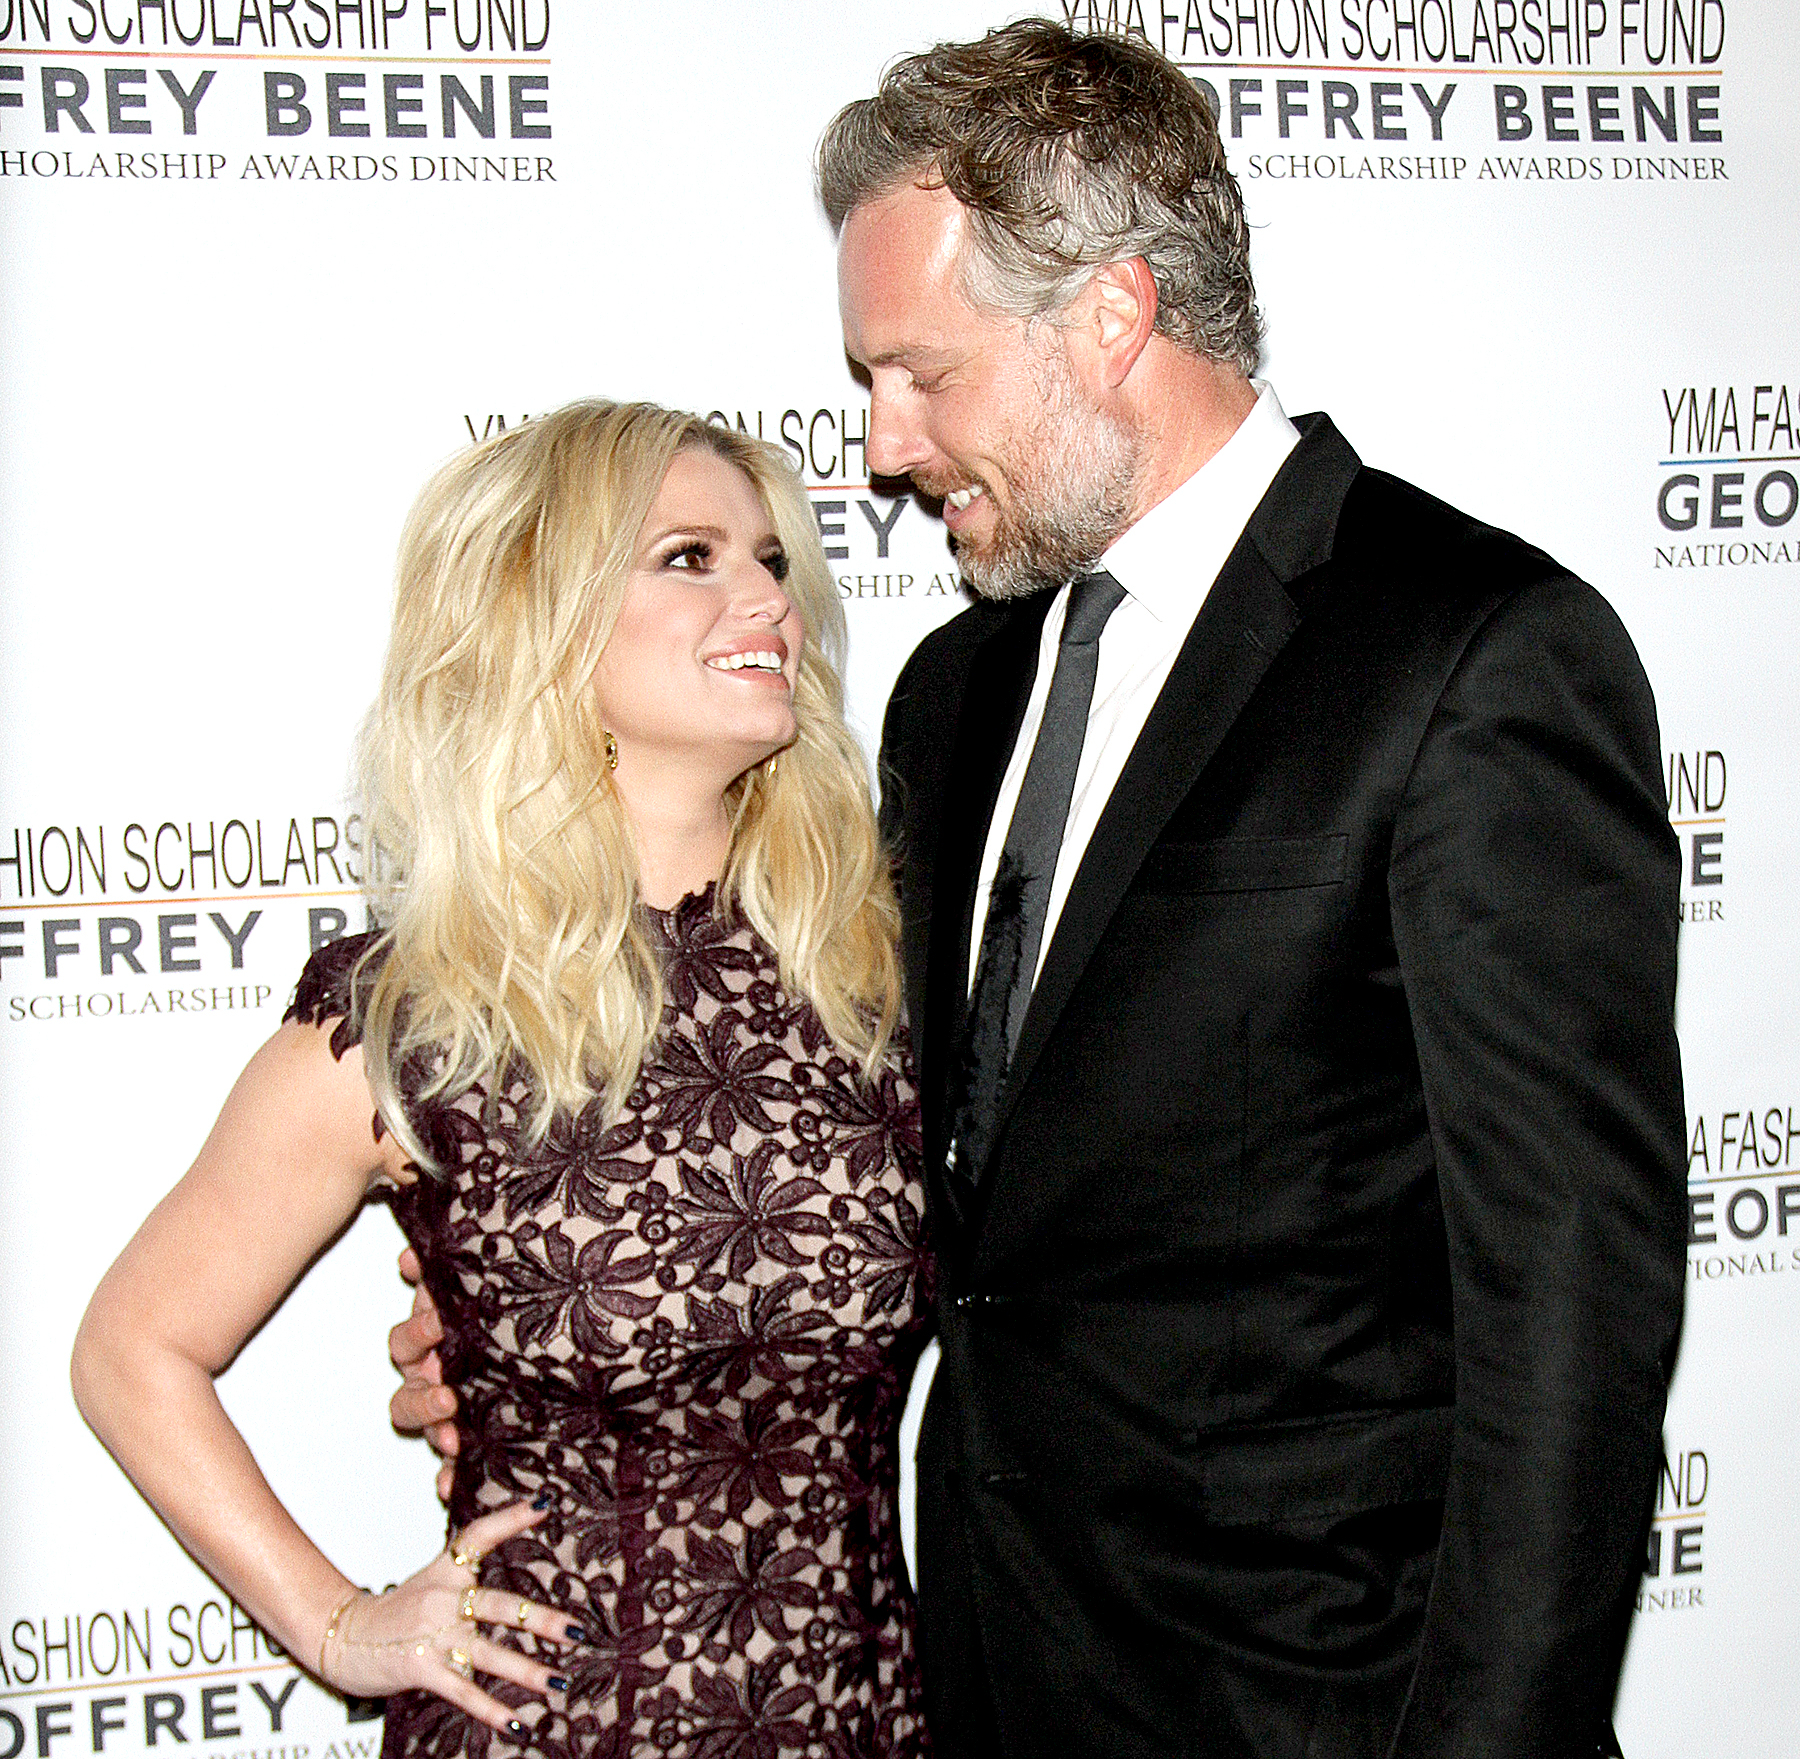 Jessica Simpson and Eric Johnson at the 2016 YMA Scholarship Fund Geoffrey Beene National Scholarship Awards Dinner.